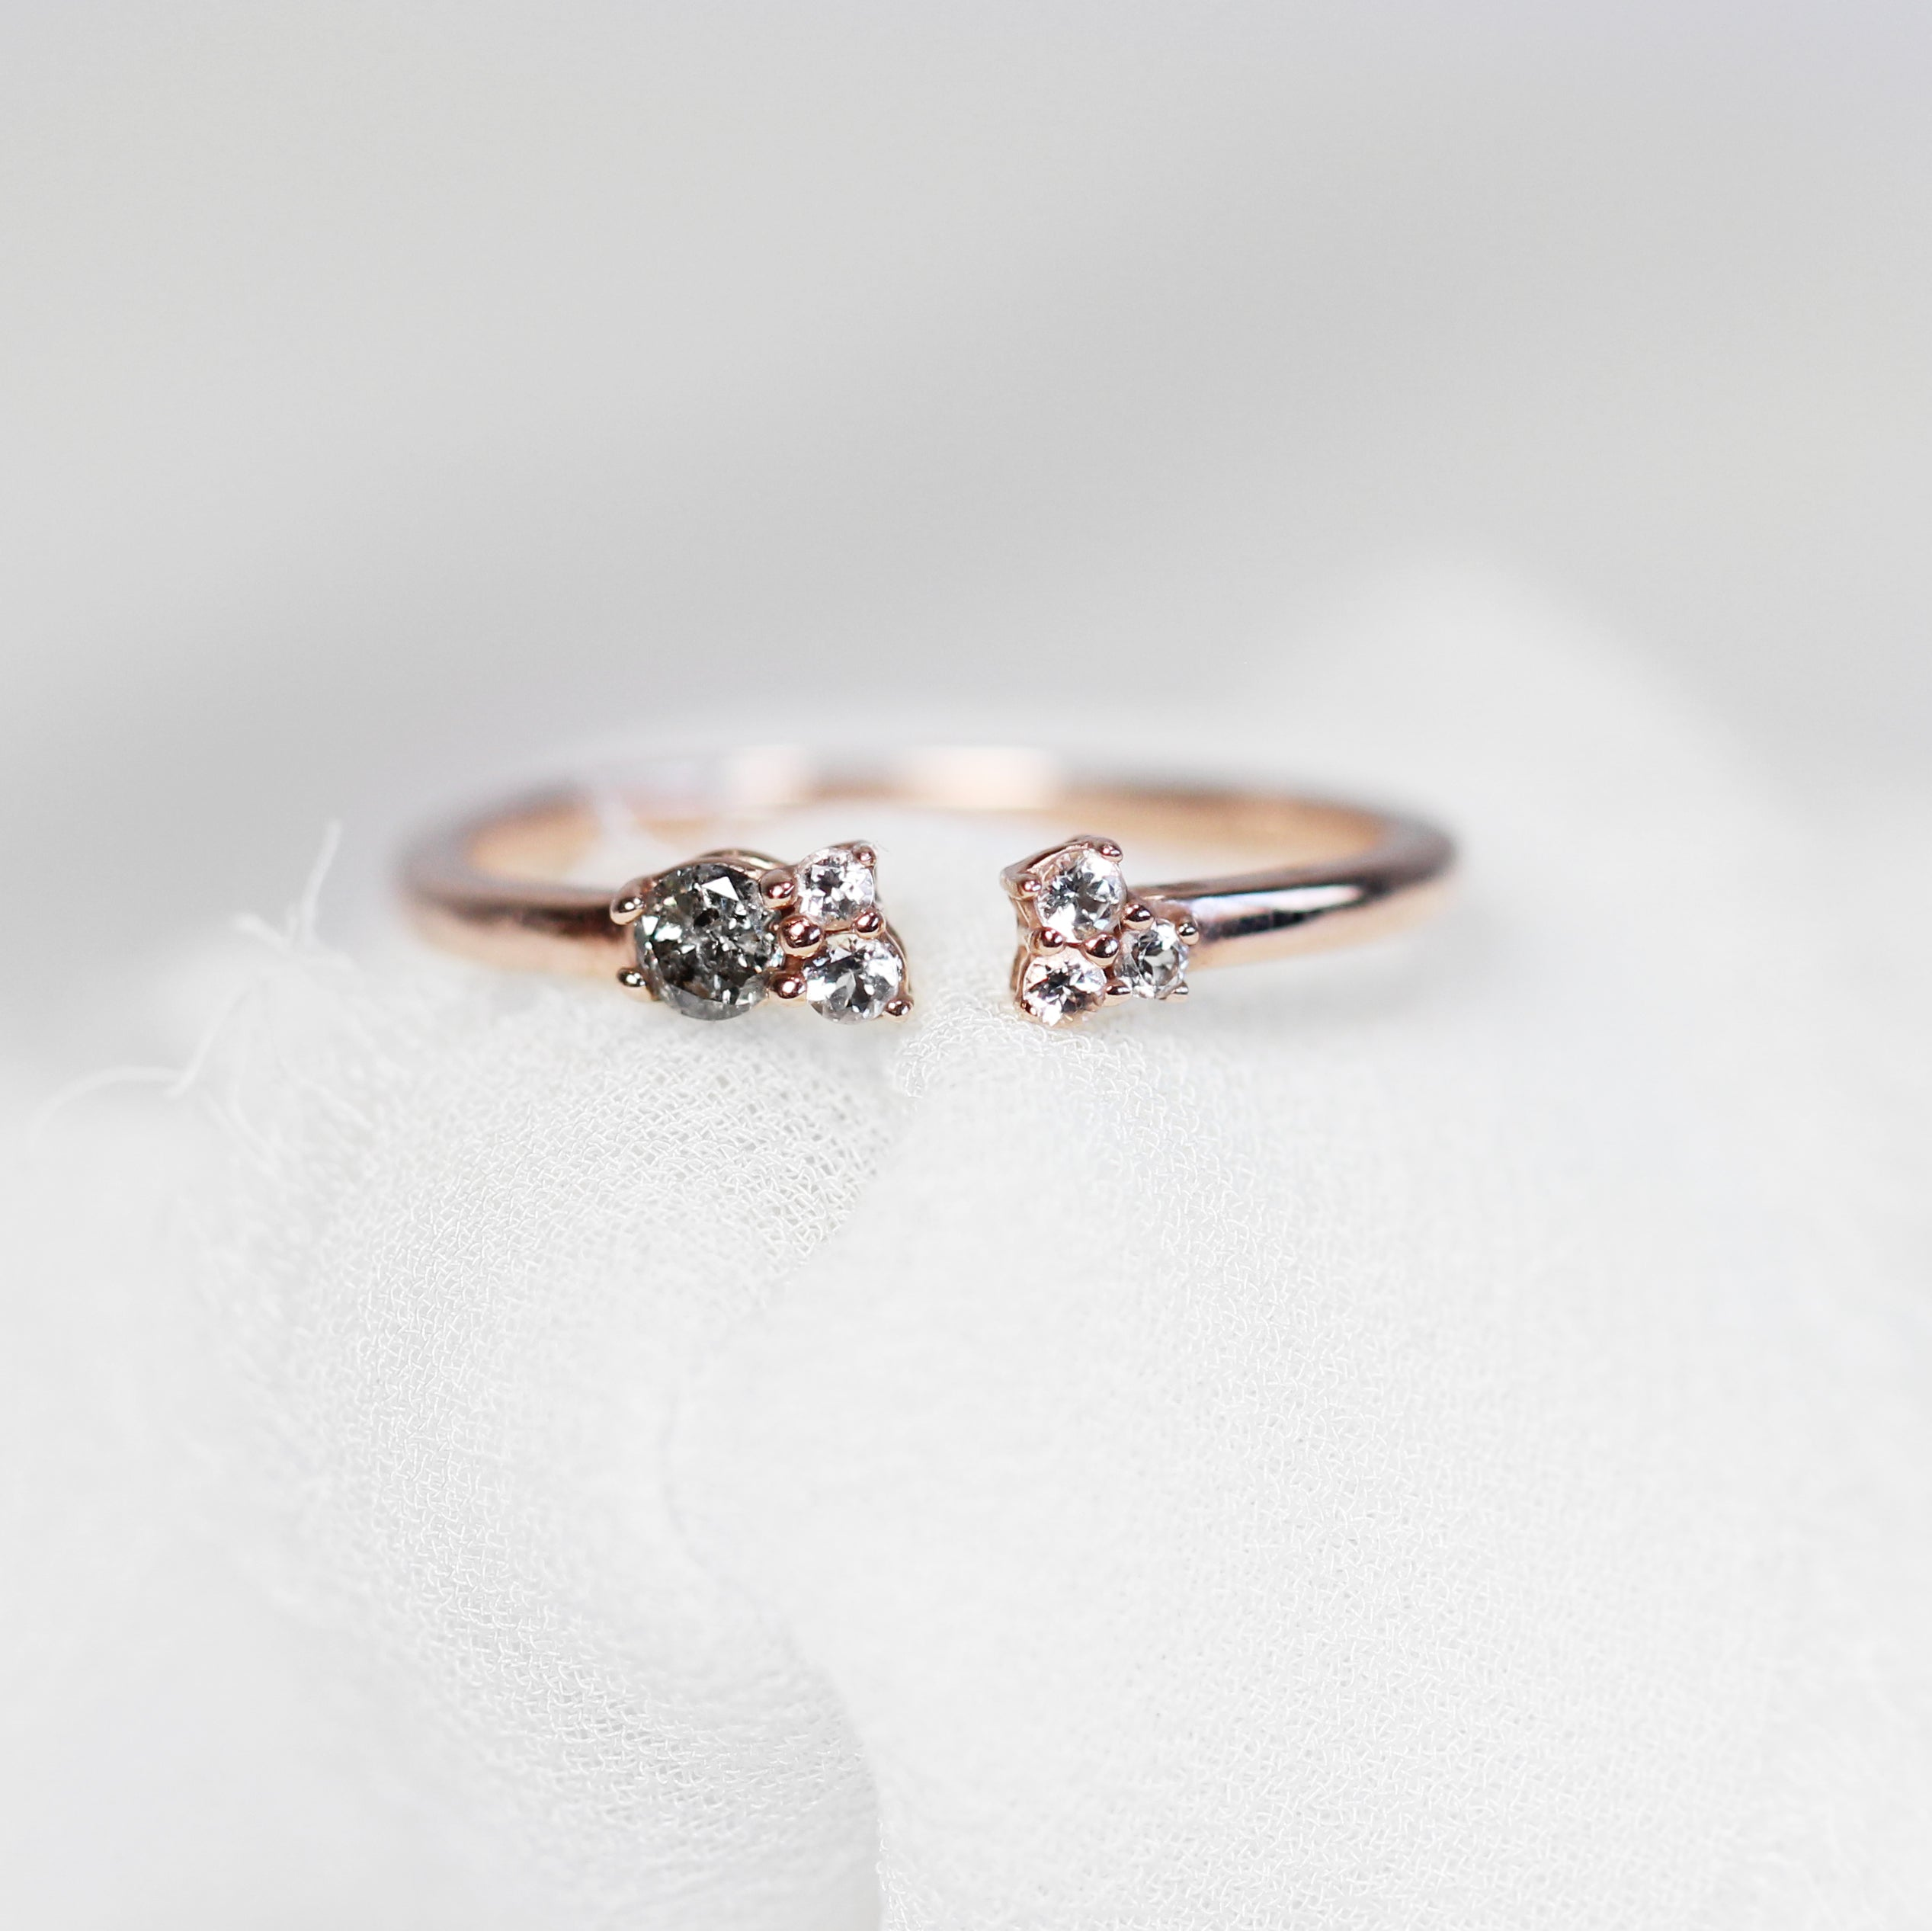 Aubrey Medium Celestical Gray and White Diamond Accents in 10k Rose Gold - Salt & Pepper Celestial Diamond Engagement Rings and Wedding Bands  by Midwinter Co.